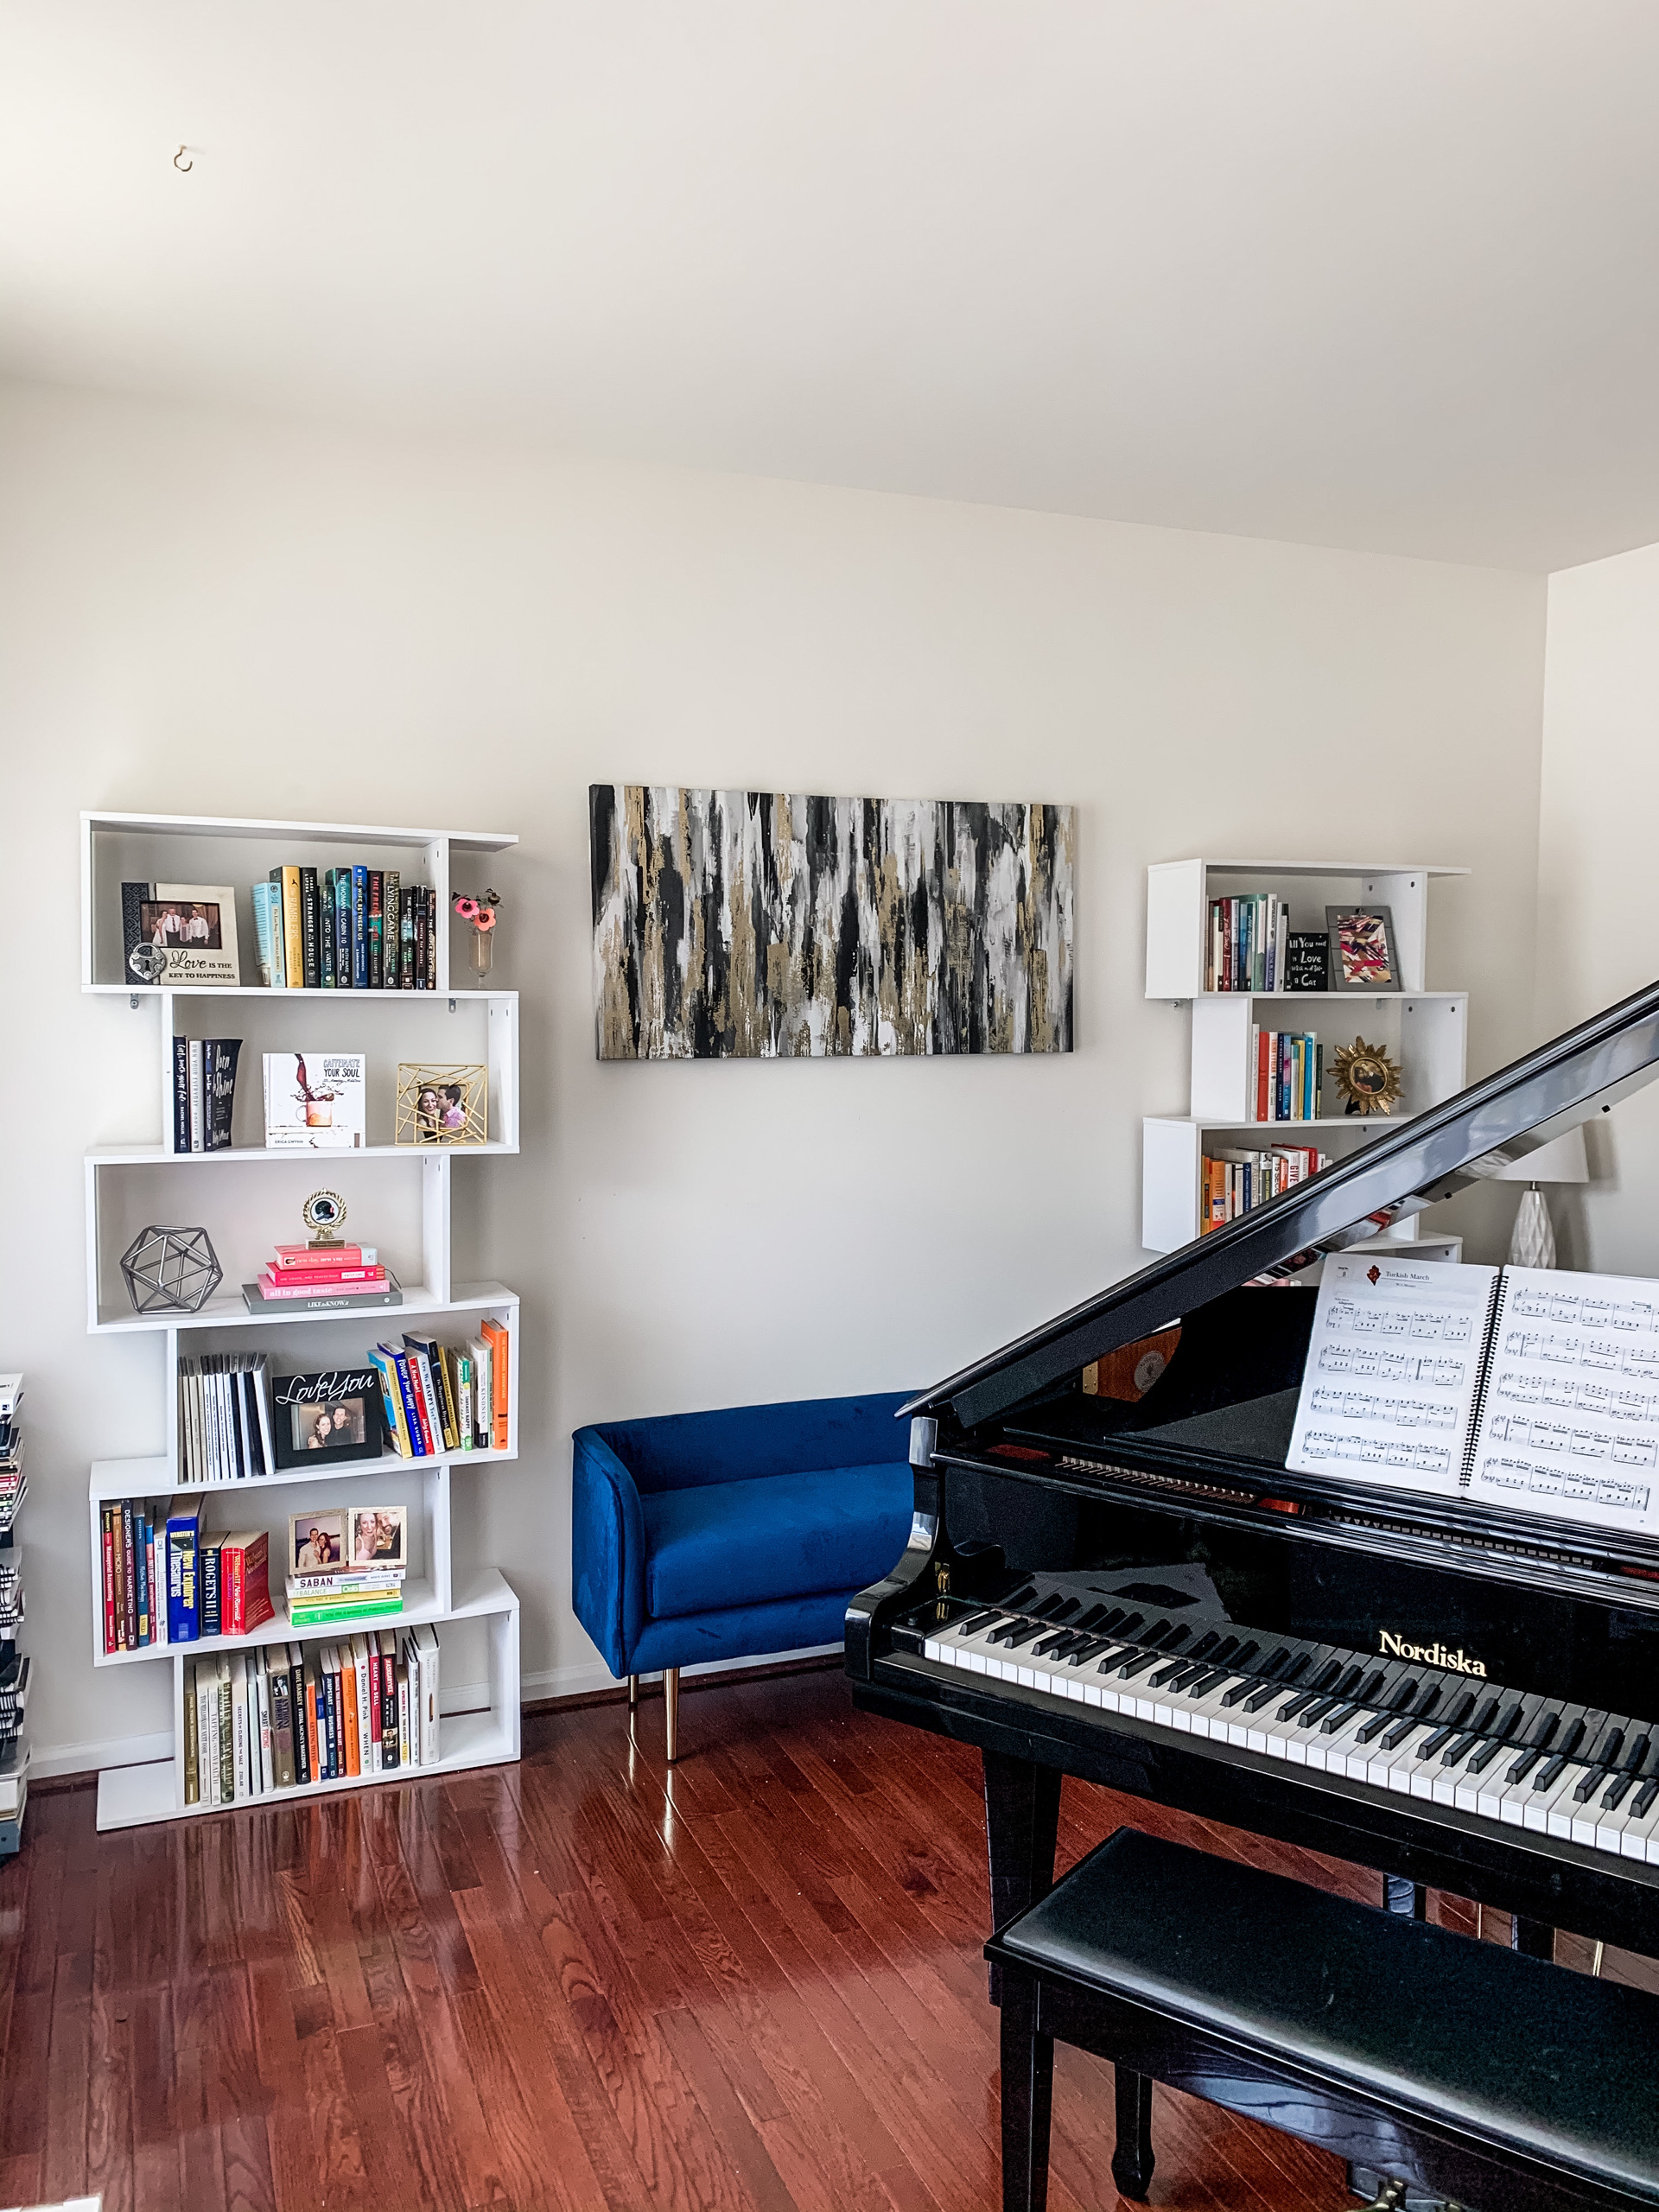 NEW HOUSE TOUR: Piano Room! Our music space + home library, on Coming Up Roses